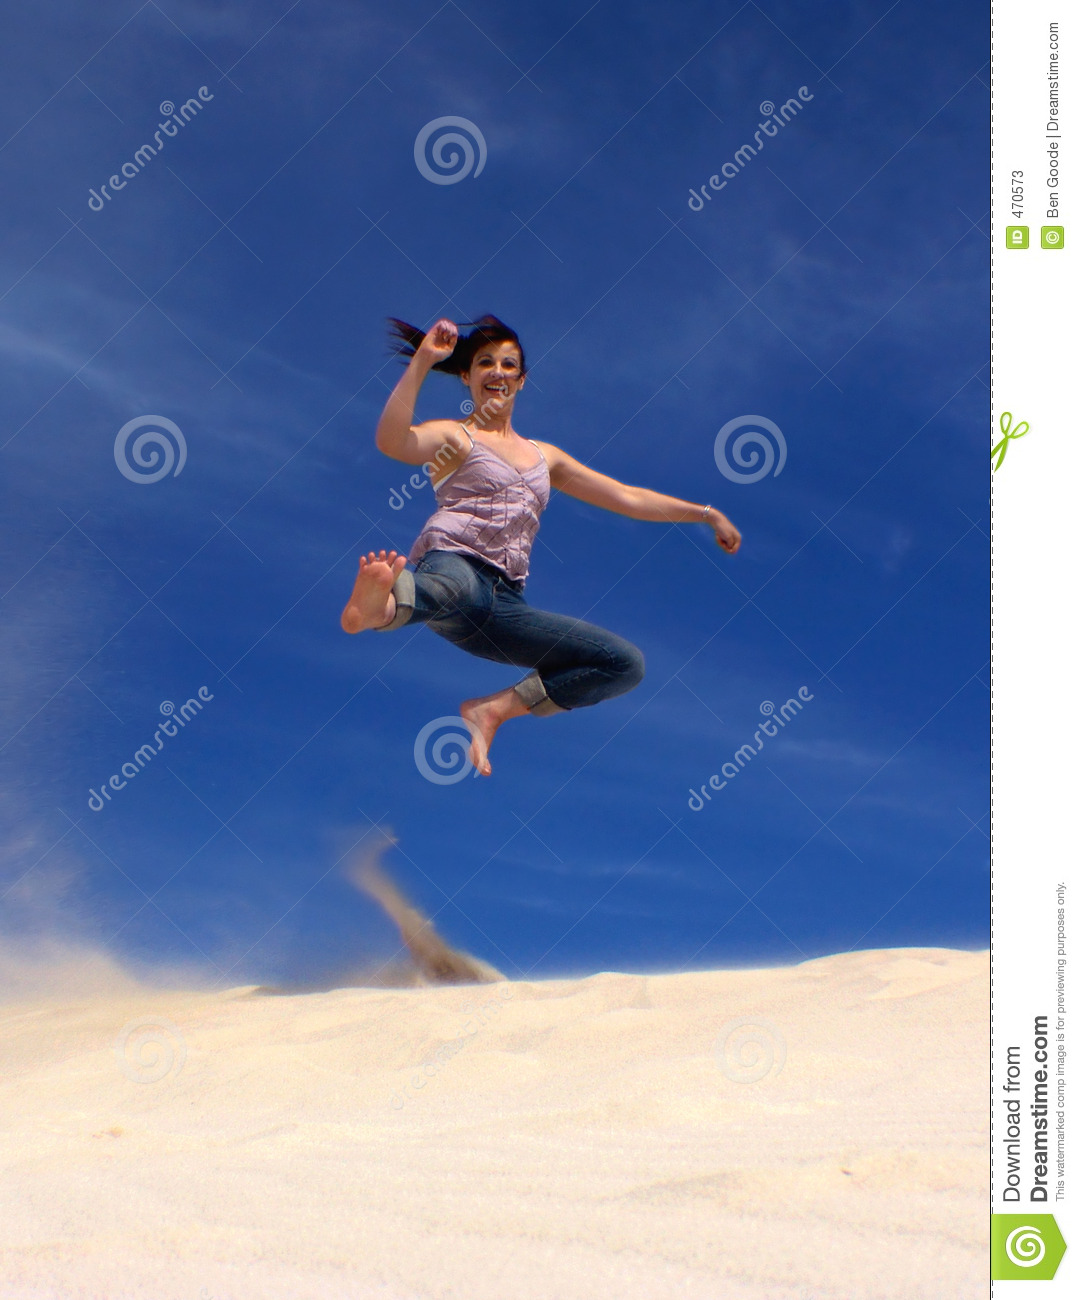 Karate Kick Stock Photos Image Karat Funny Doblelolcom